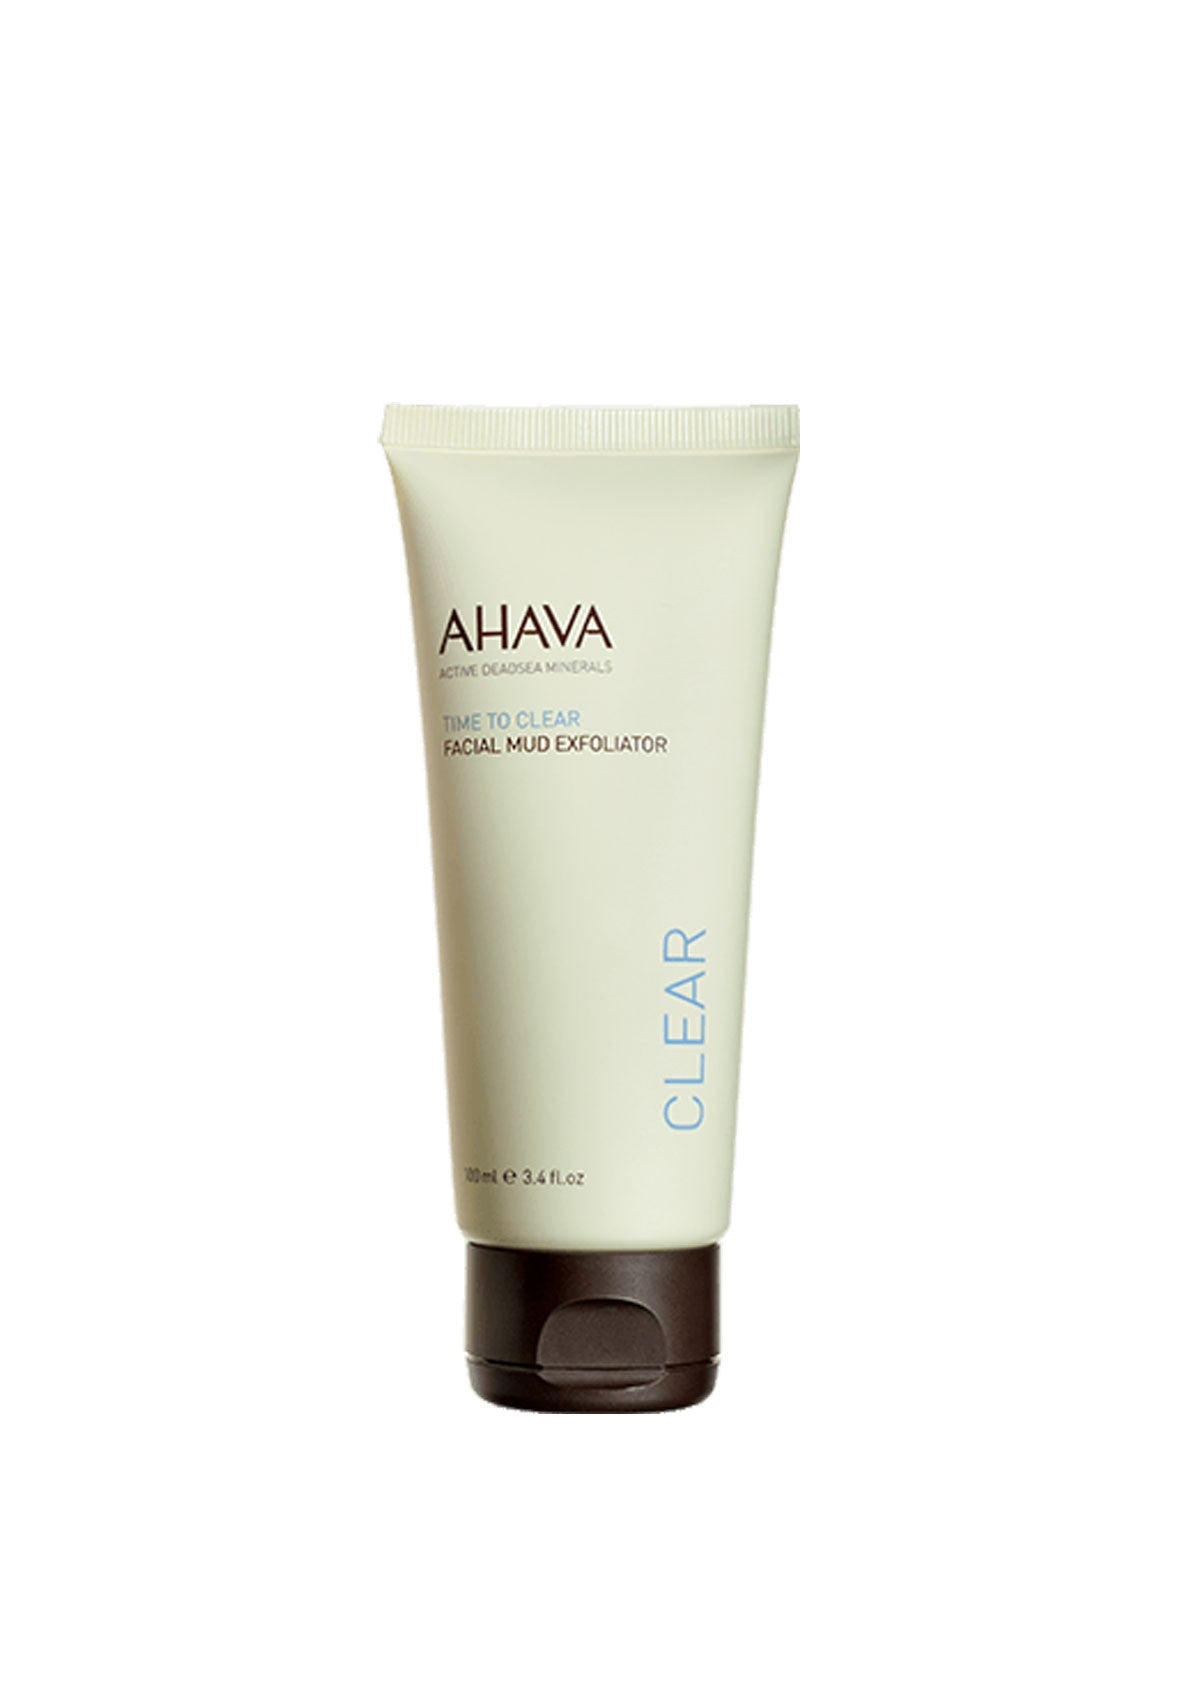 AHAVA - Facial Mud Exfoliator - DeadSeaShop.co.uk